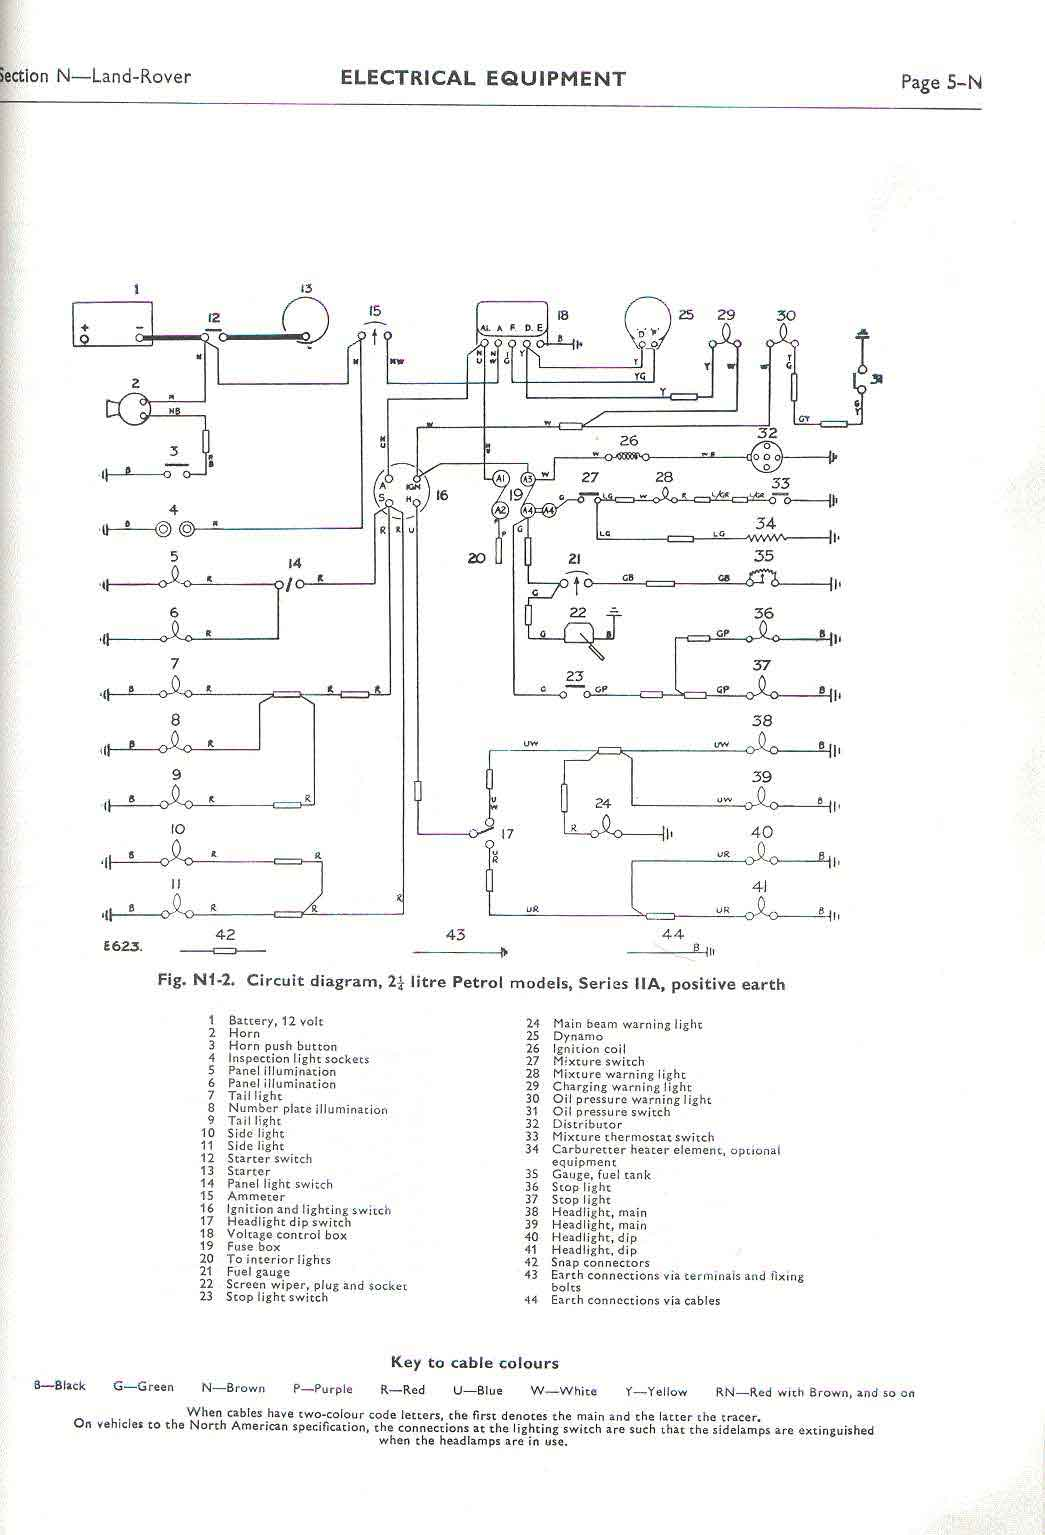 SIIA+VE land rover faq repair & maintenance series electrical land rover series 3 wiring diagram at reclaimingppi.co